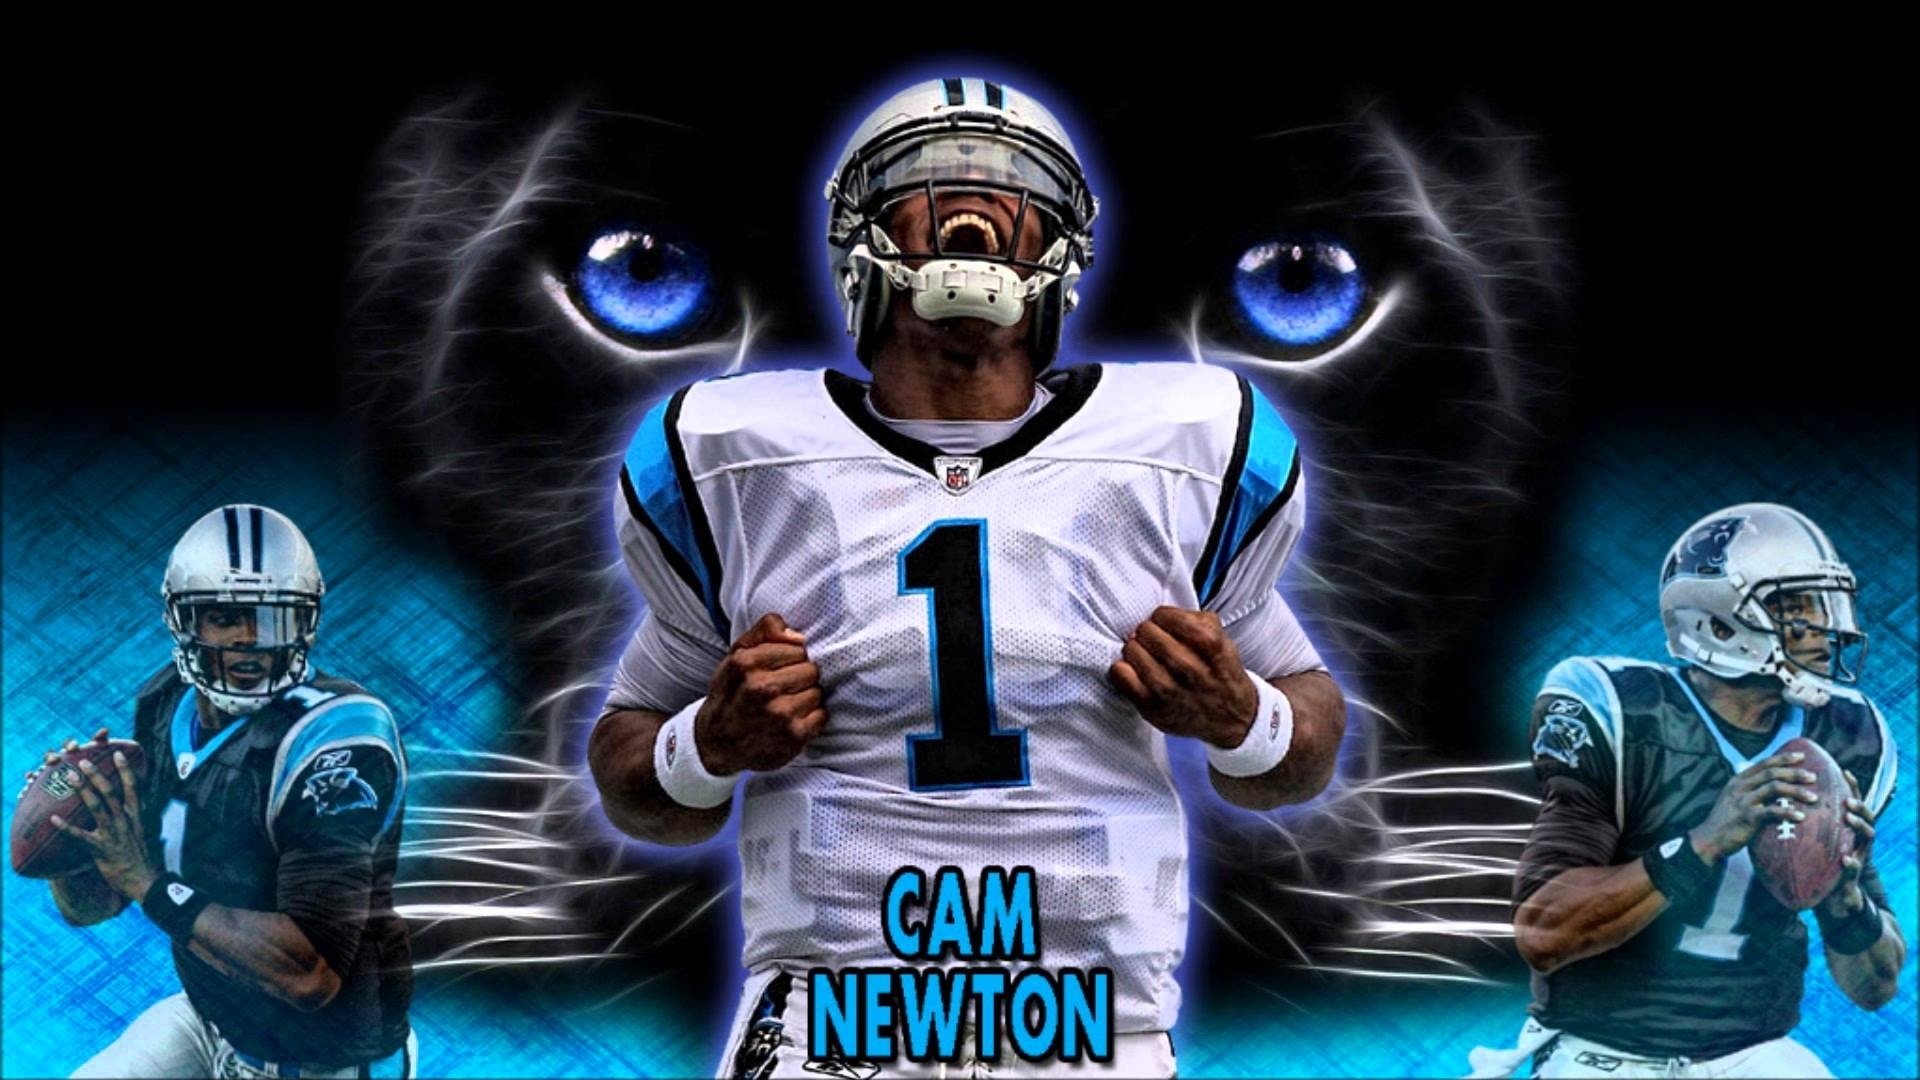 cam newton full hd wallpaper and background image | 1920x1080 | id